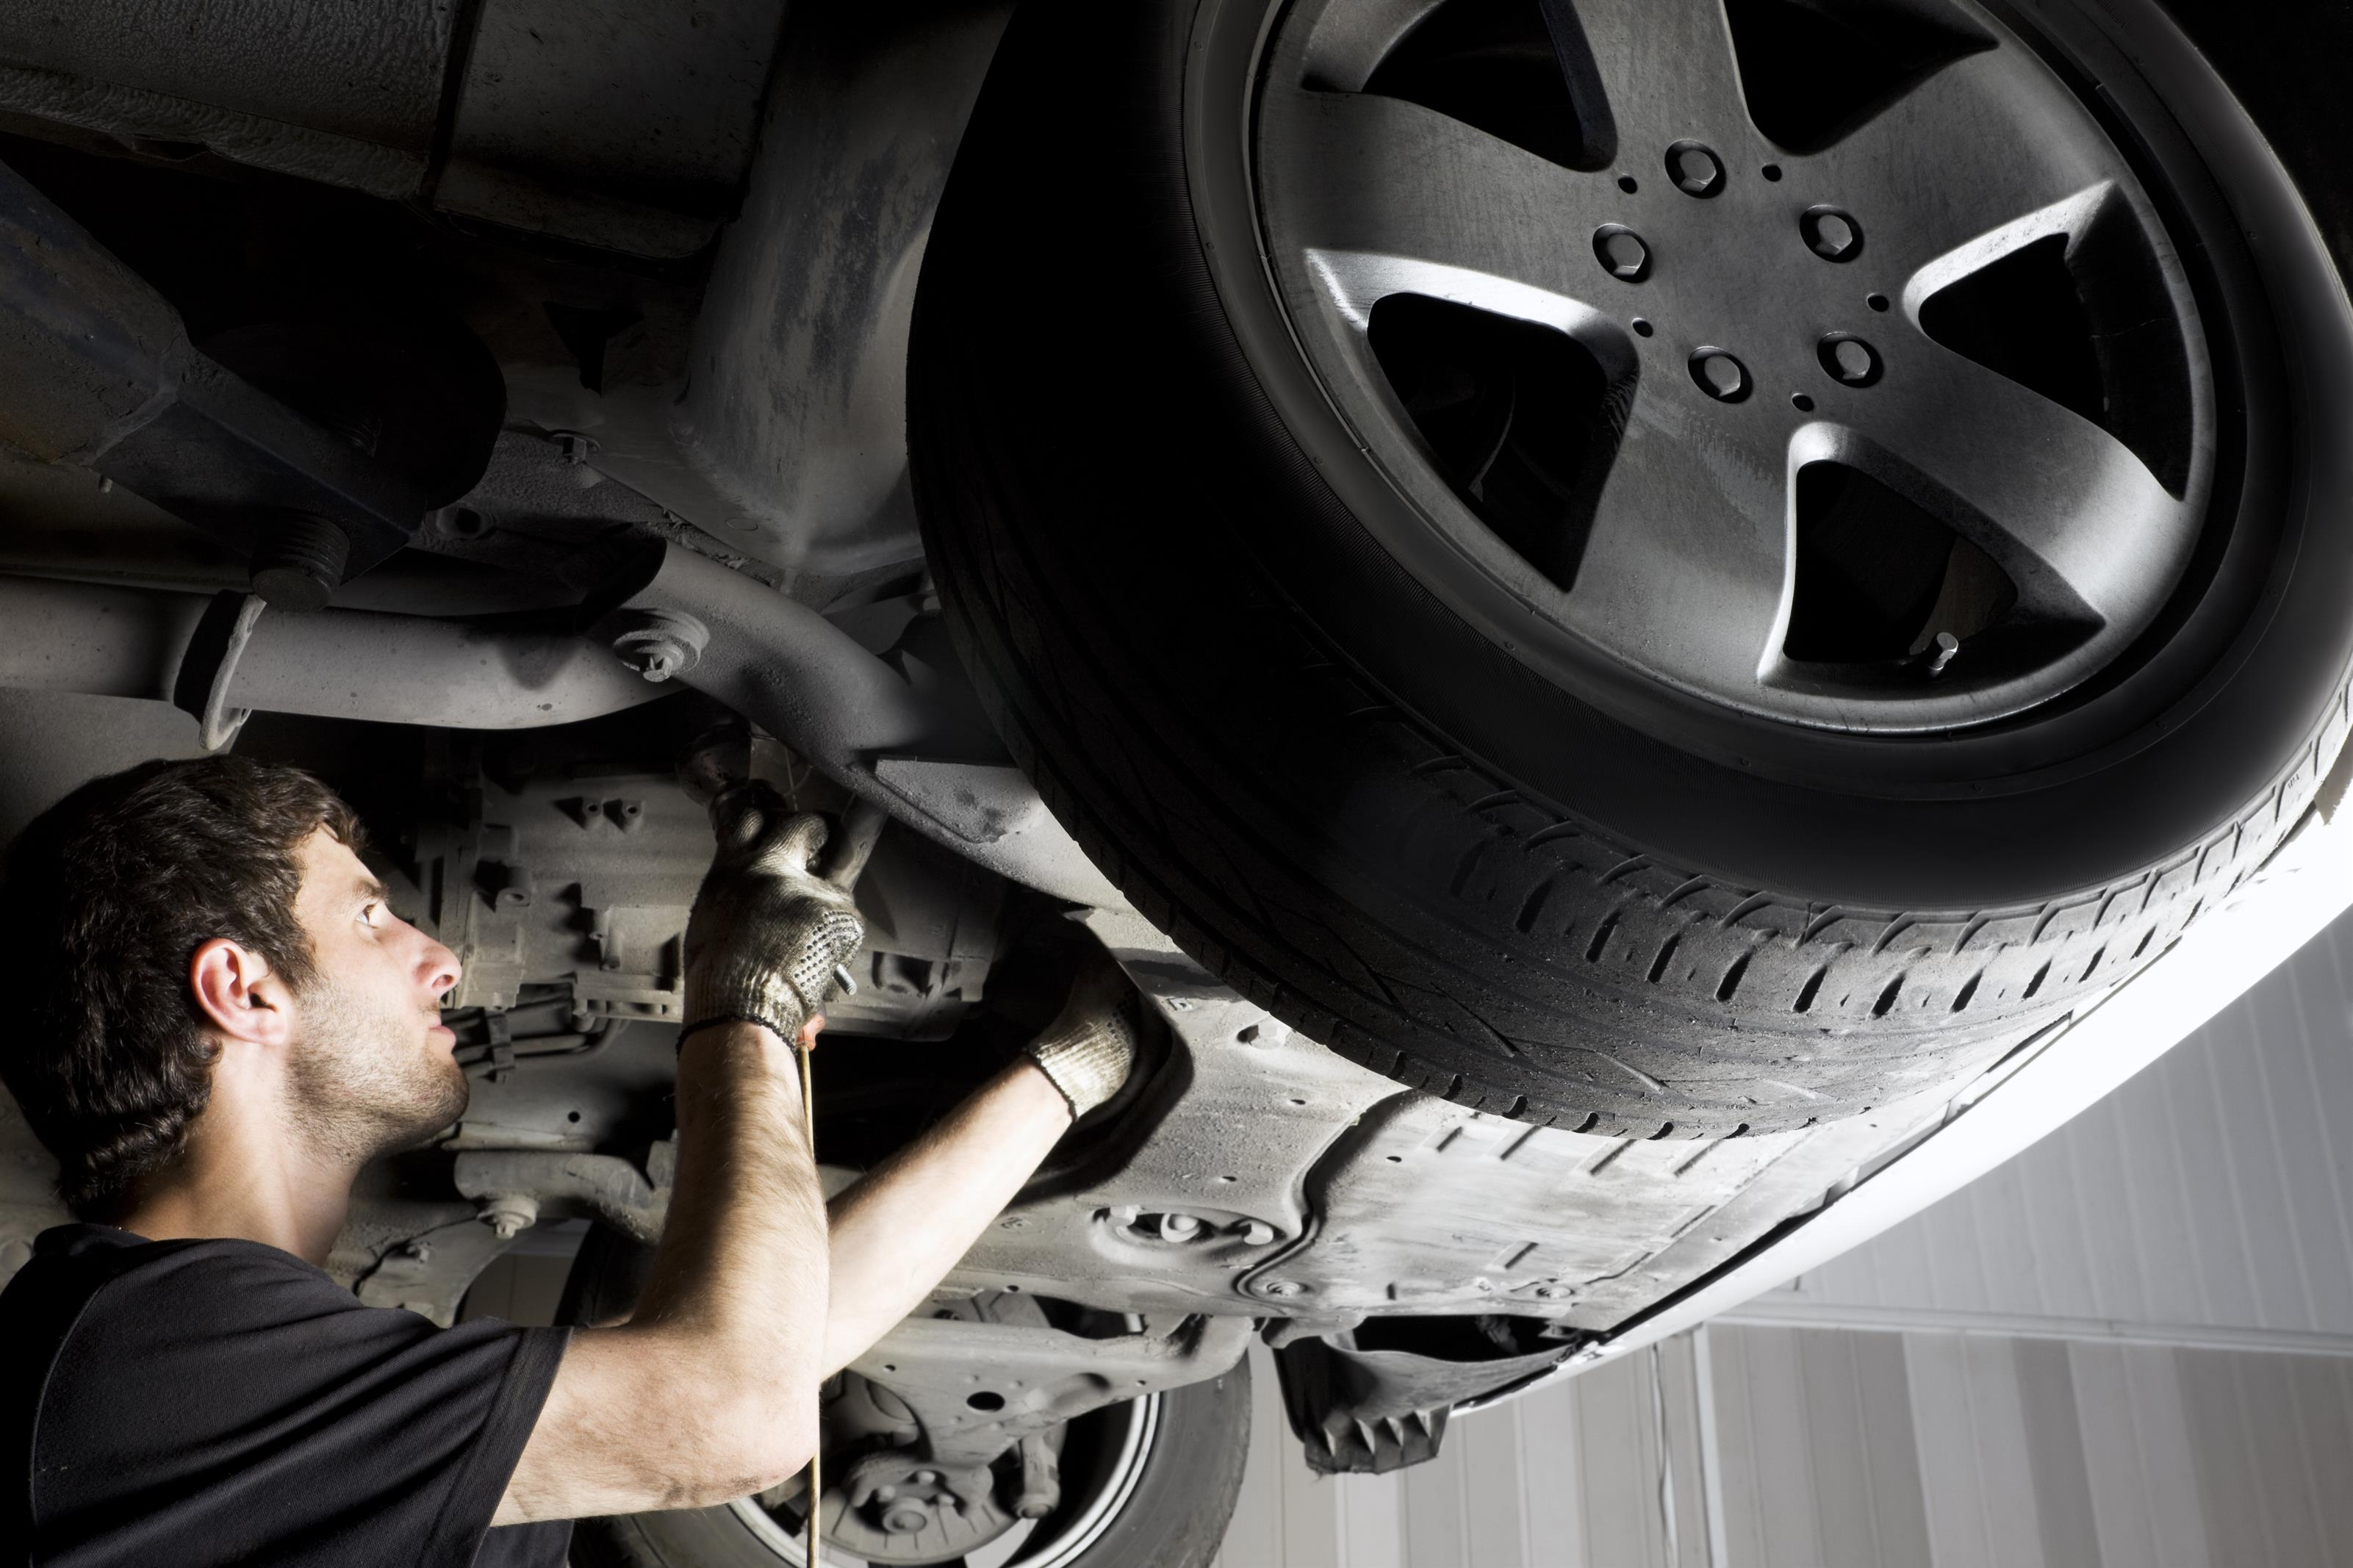 technician working on engine under a car